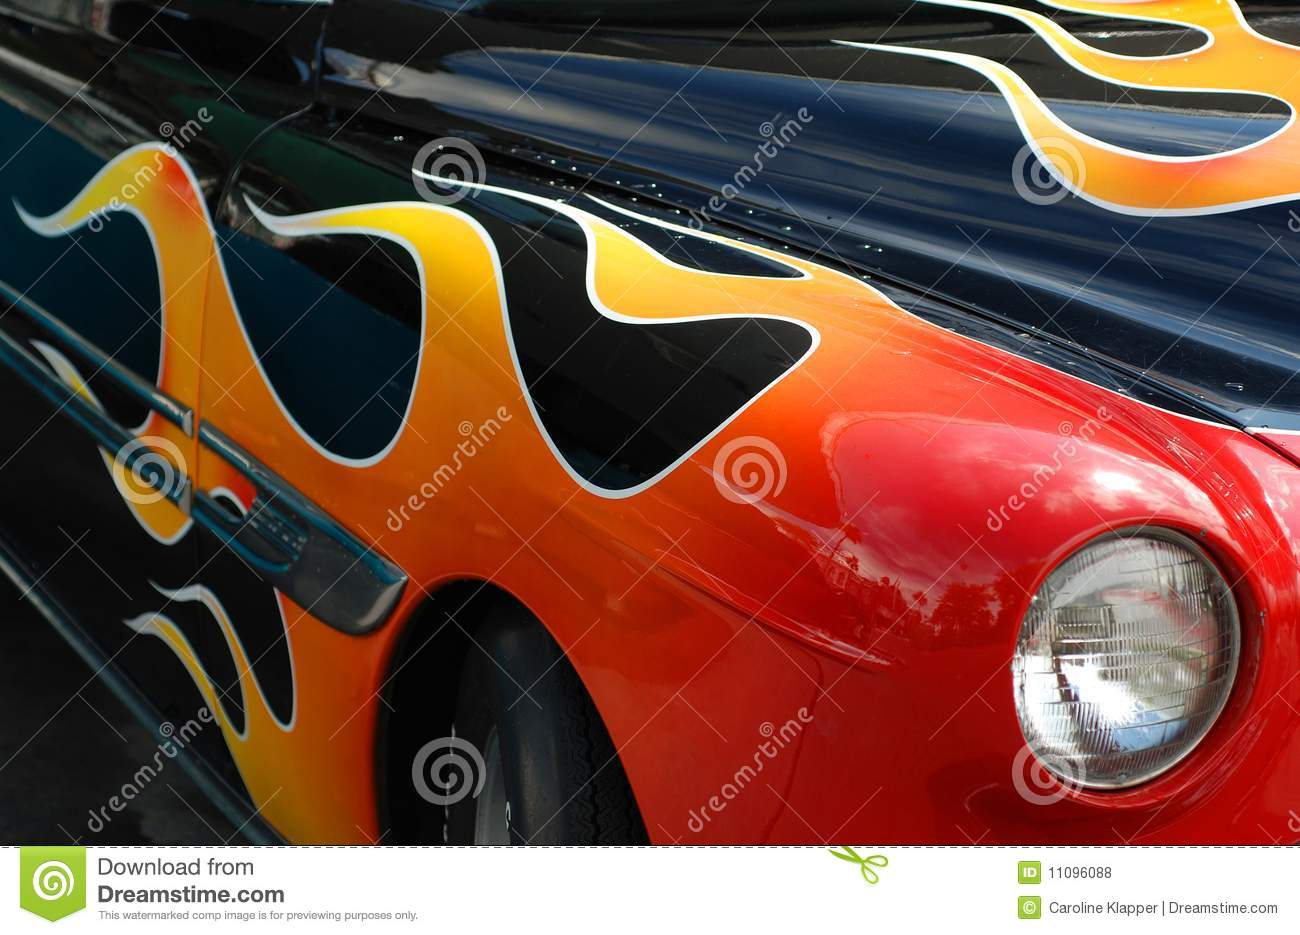 Pictures Of Flames Painted On Cars